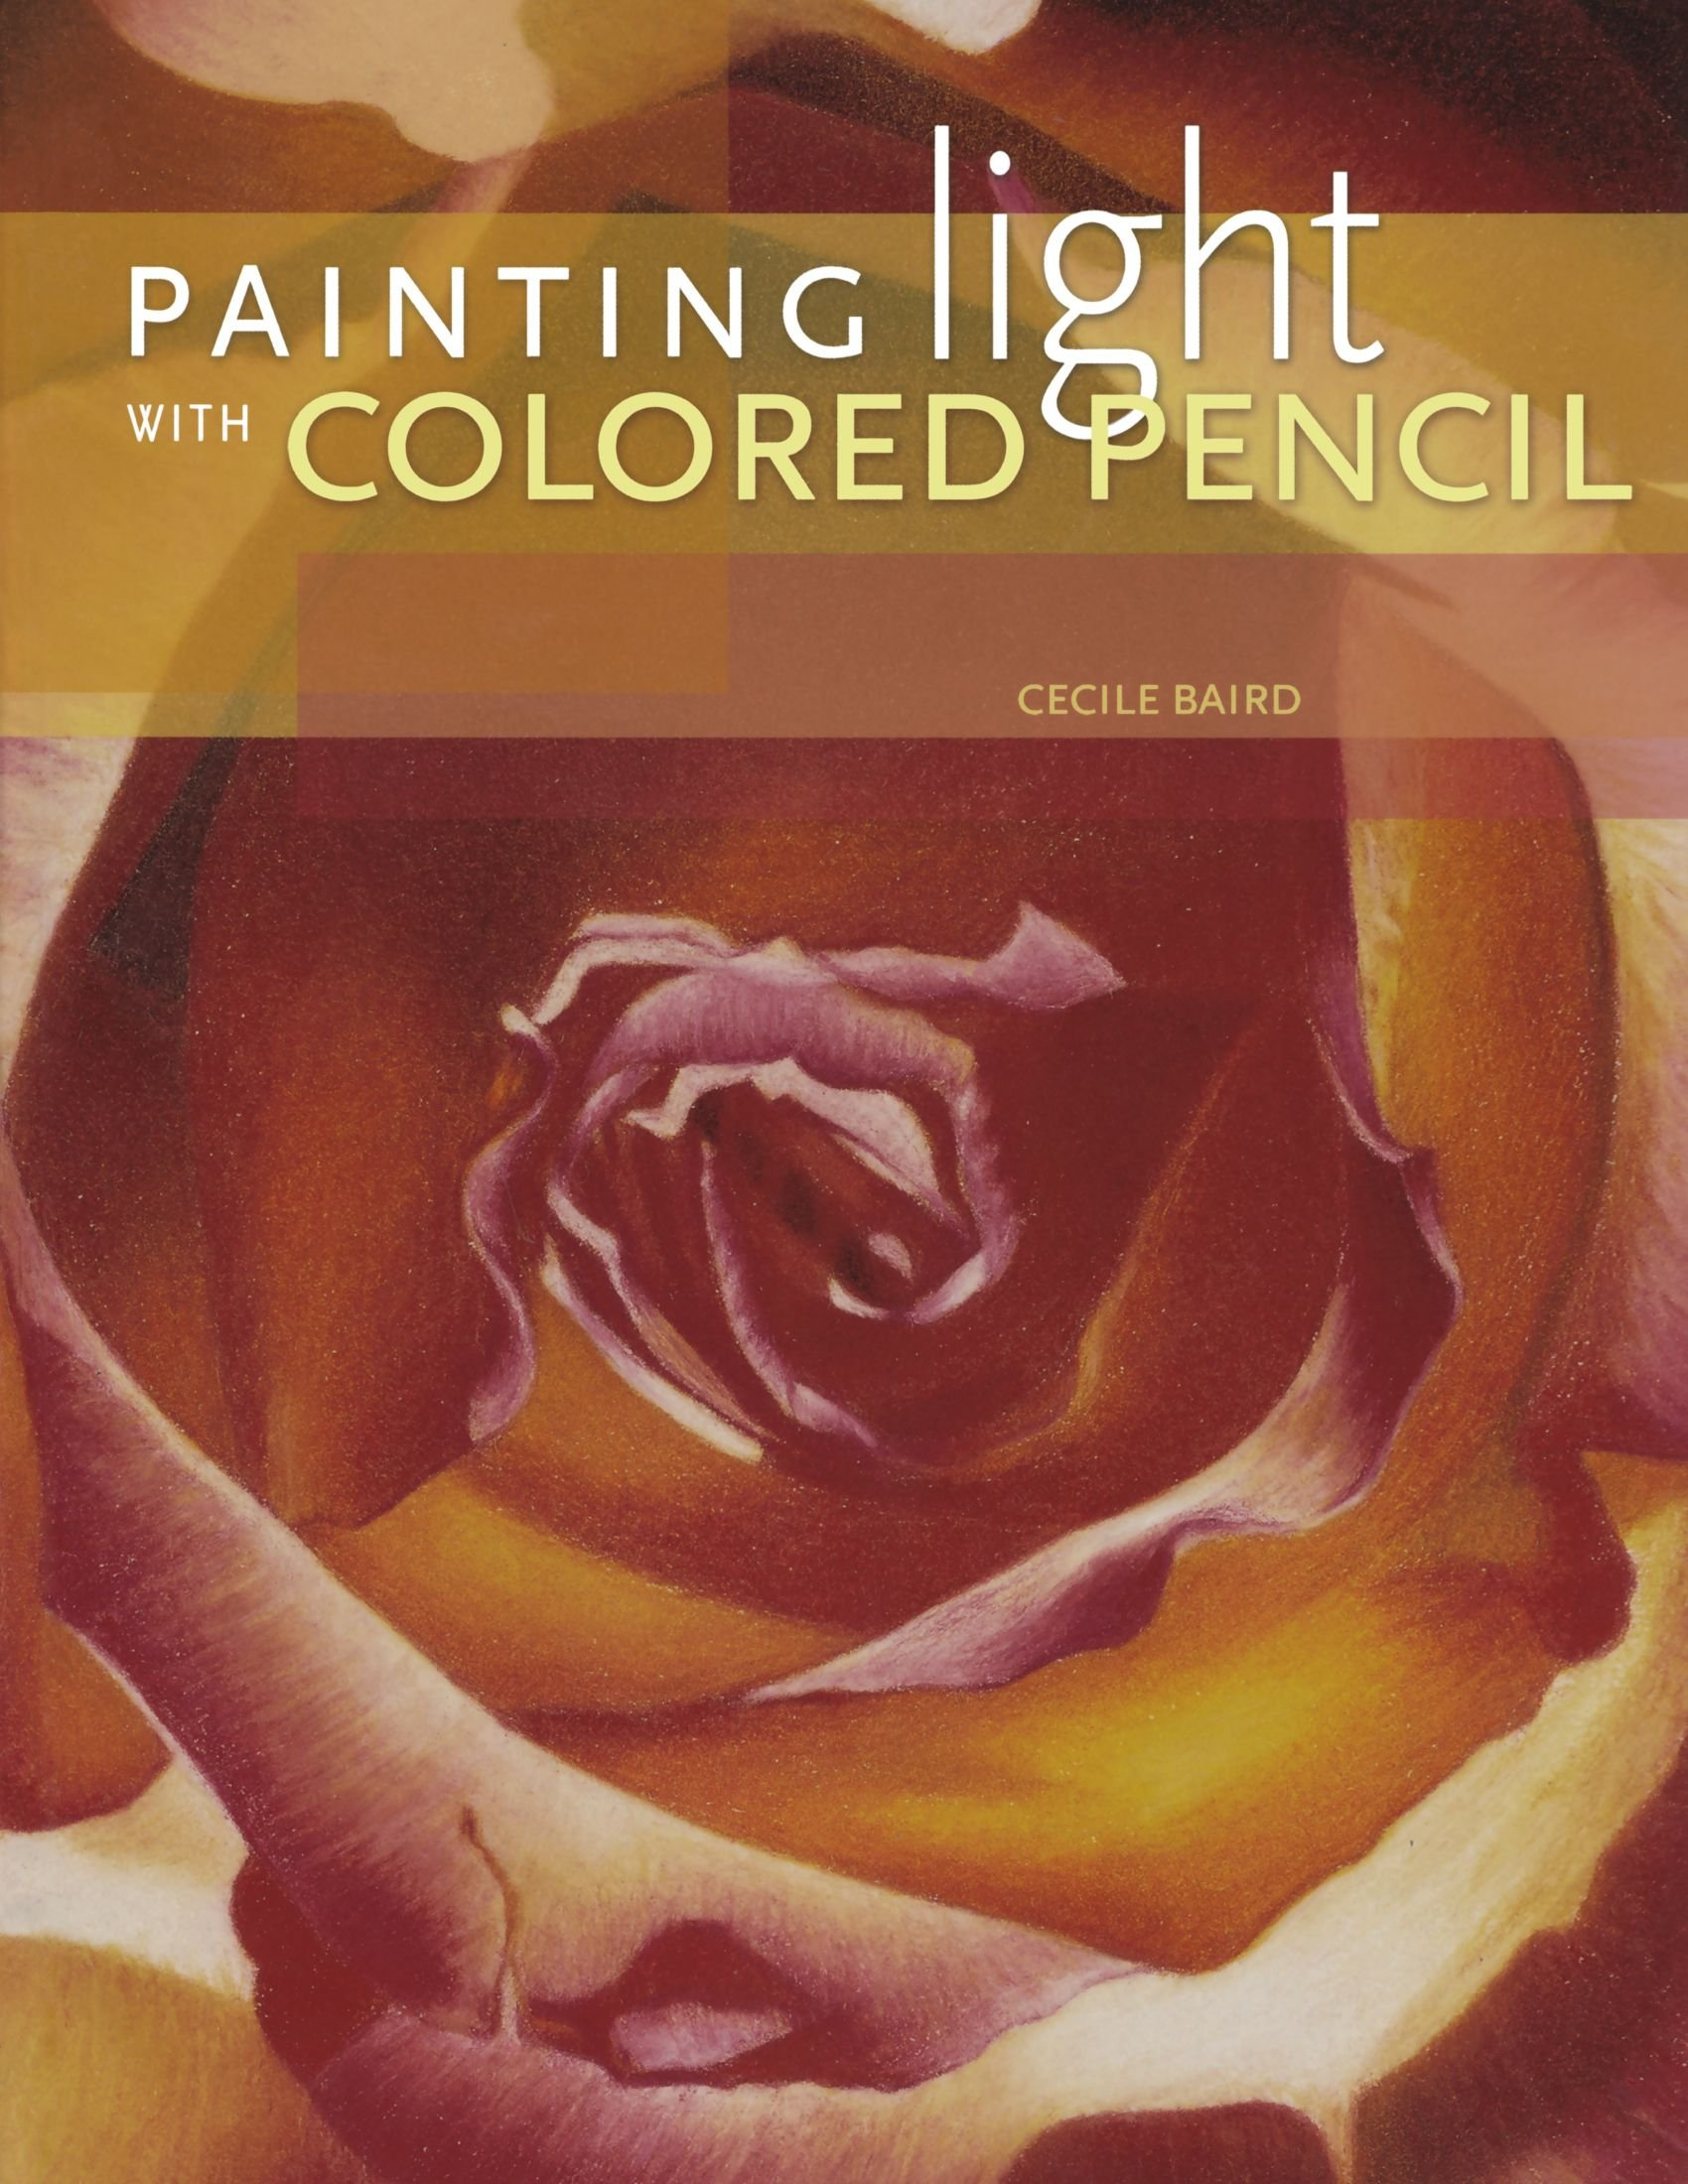 Painting Light With Colored Pencil: Cecile Baird: 9781600611674:  Amazon.com: Books